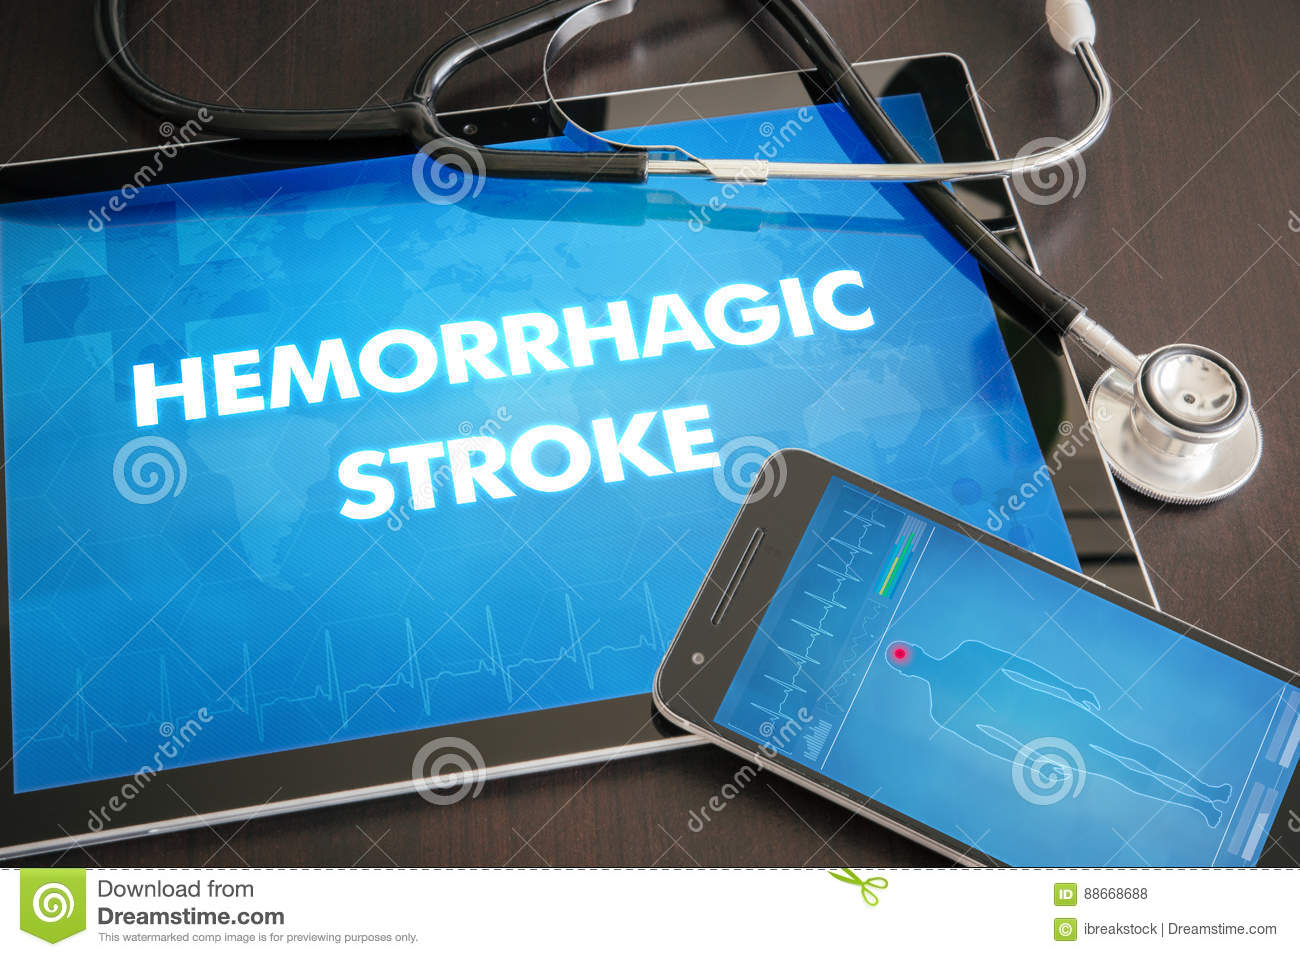 Hemorrhagic stroke (heart disorder) diagnosis medical concept on